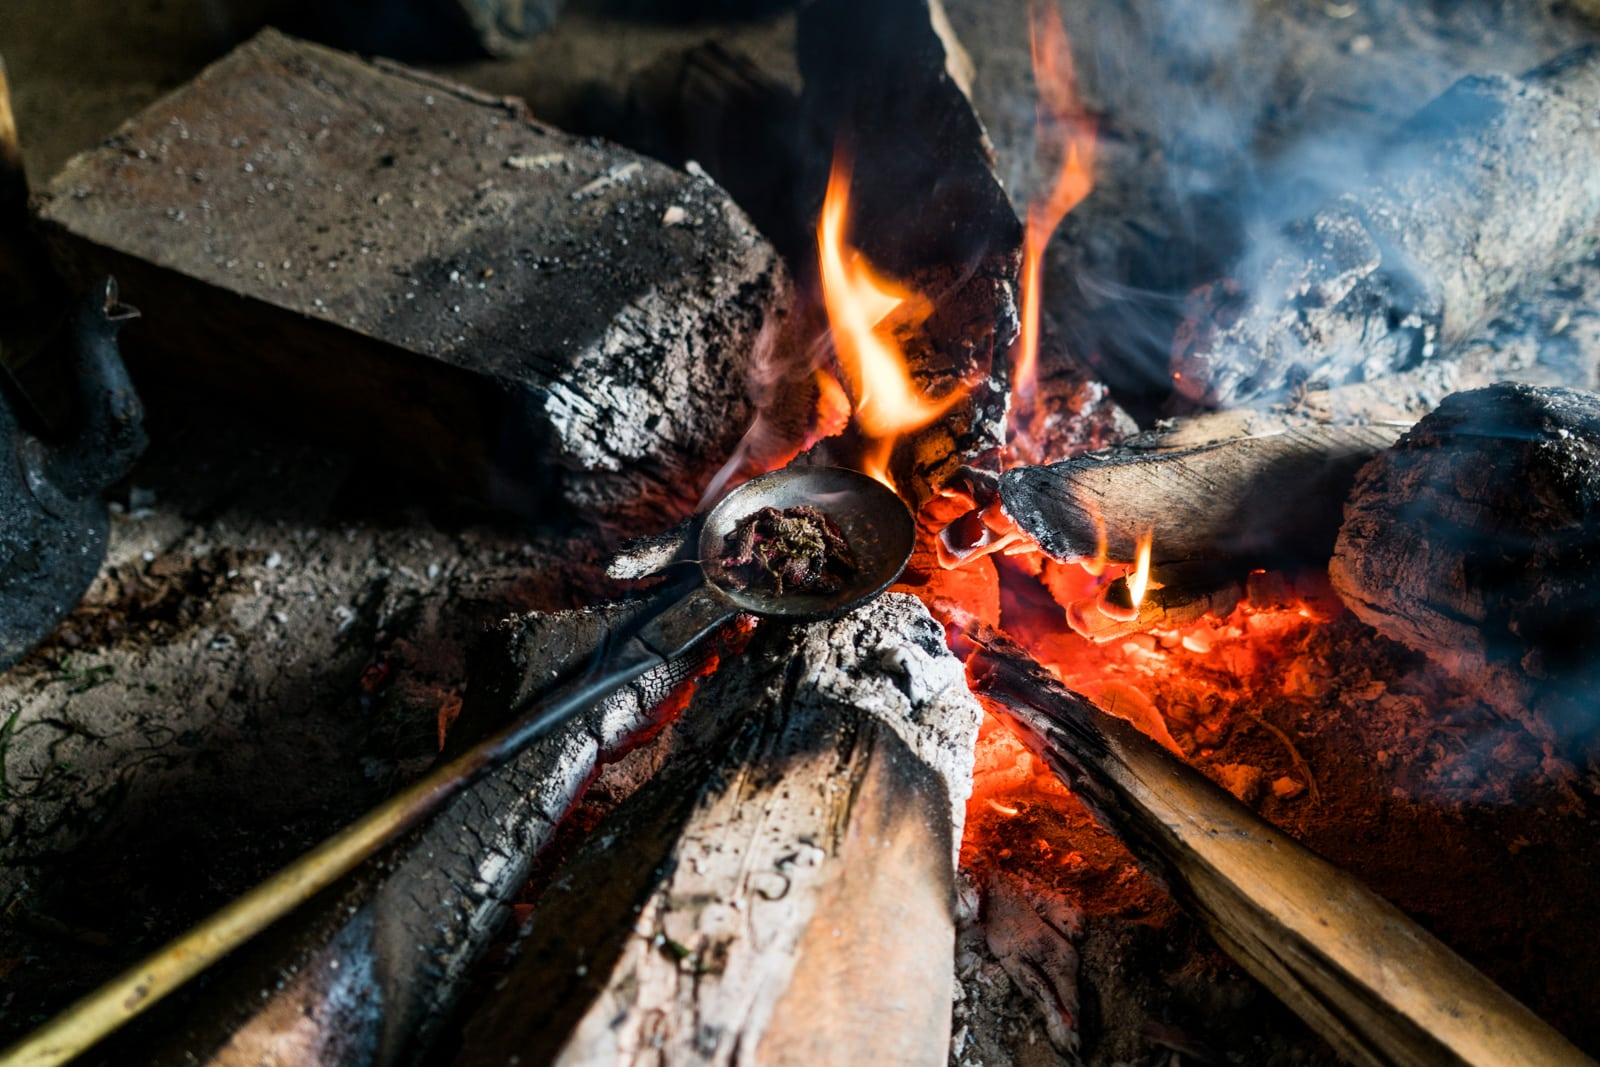 Opium and Jesus and headhunting in Longwa Village, Nagaland, India - Spoon of opium cooking on a fire - Lost With Purpose